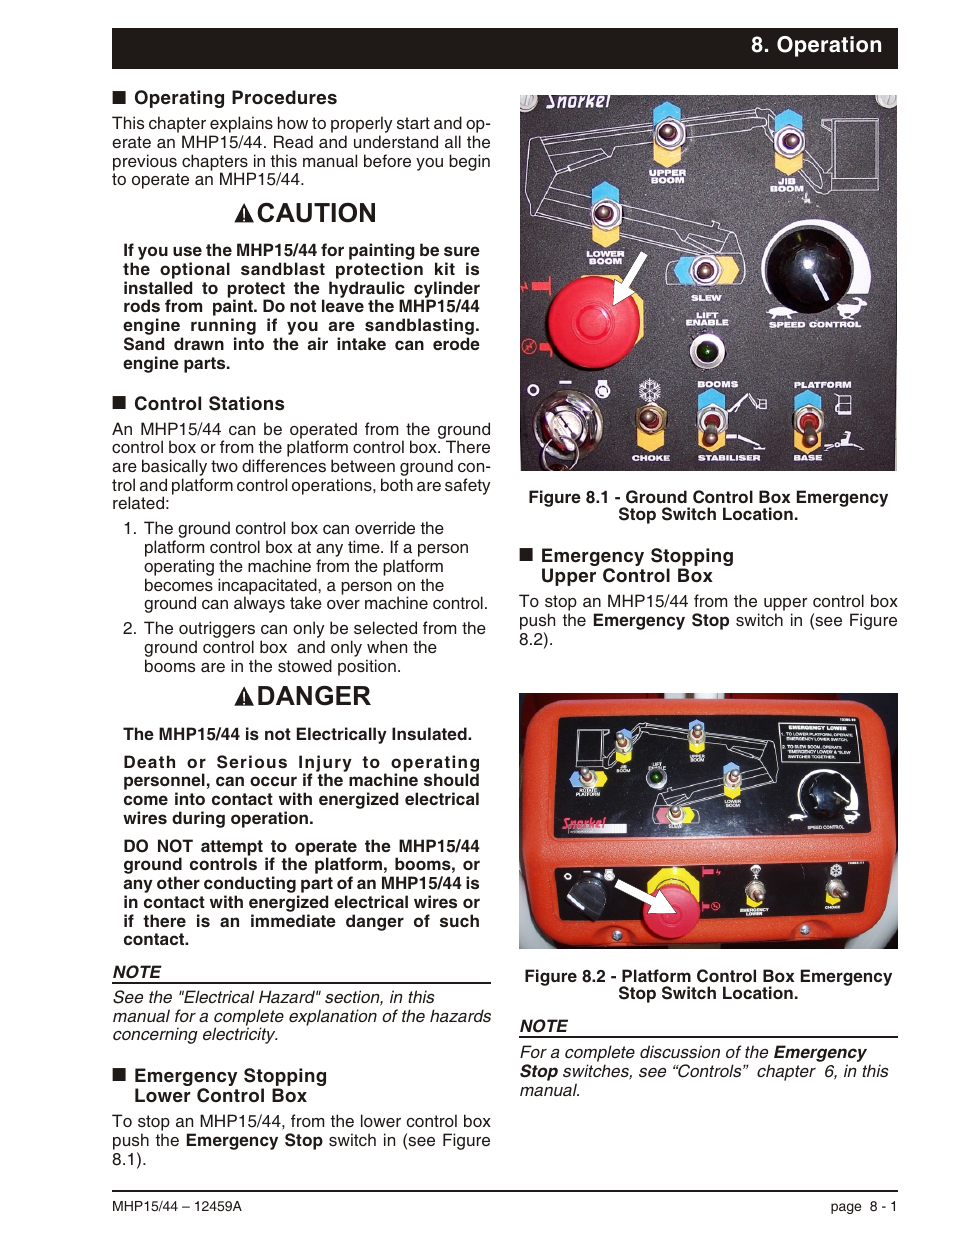 Operation, Operating procedures 8-1, Control stations 8-1 | Emergency  stoppinglower